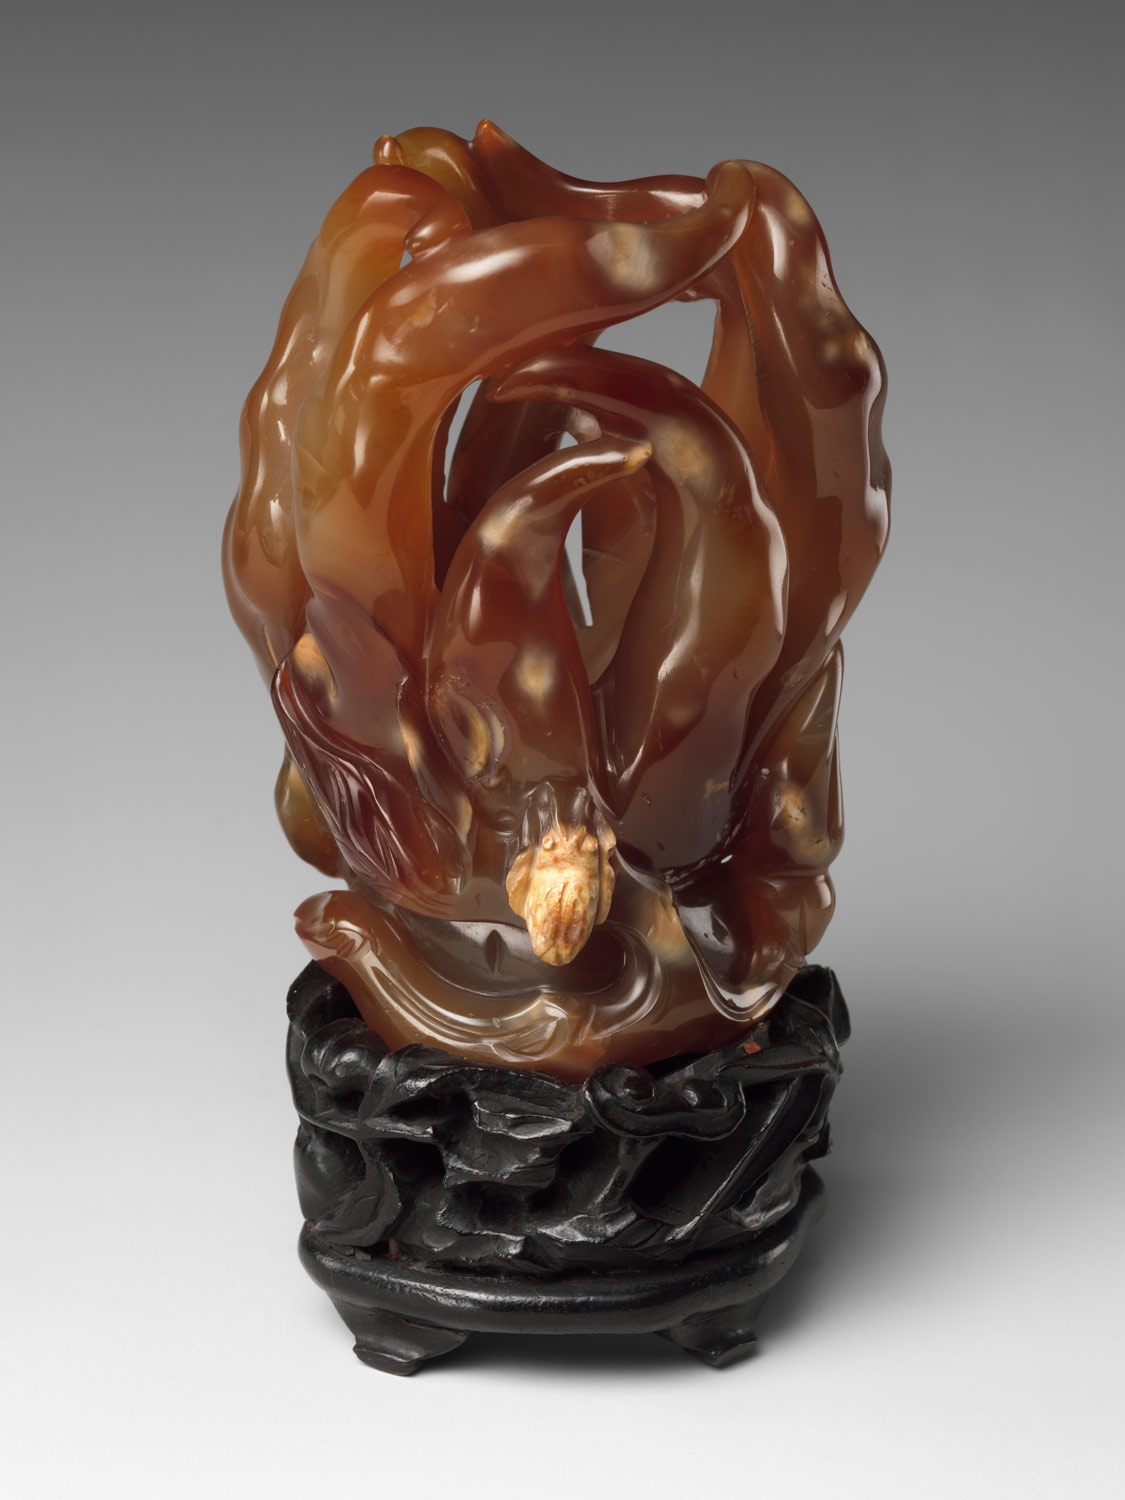 Amber Buddha's Hand from the Qing Dynasty dating back to 1644, currently in the Metropolitan Museum of Art.